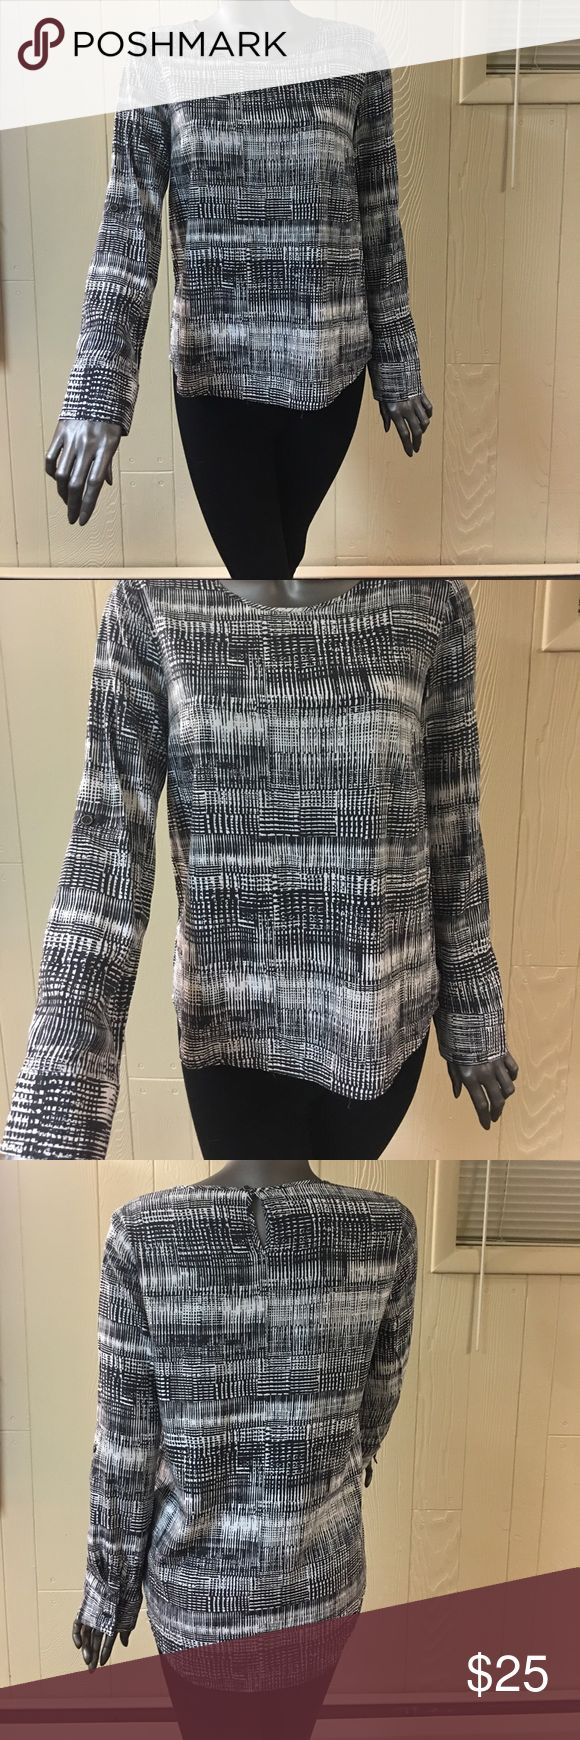 Bass Long Sleeve Bass Long Sleeve Black and White shirt! Light material — perfect for any weather! Great for work or a night out! ***ONLY WORN ONCE*** Bass Tops Tees - Long Sleeve